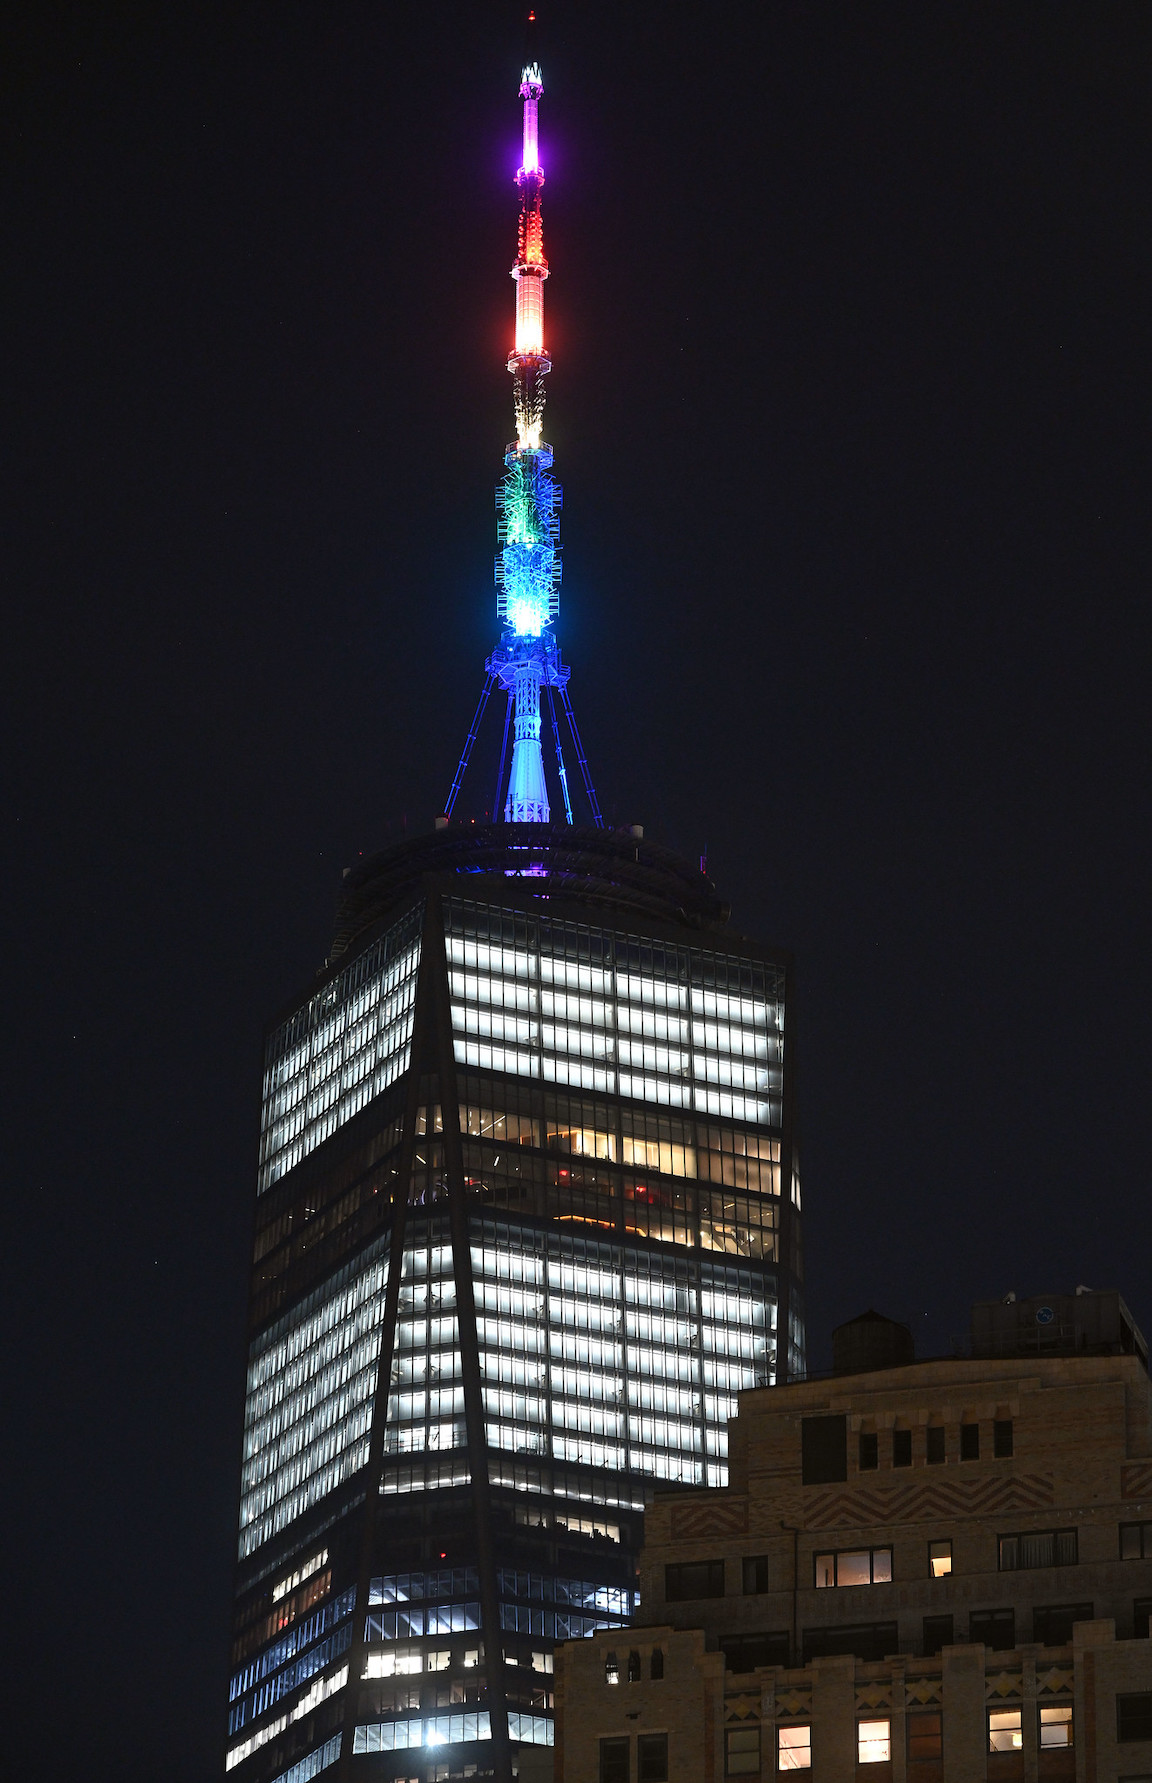 Gov. Andrew Cuomo announced landmarks across the state would be lit in honor of Pride Month and the LGBTQ community, including the spire of One World Trade Center (shown here), the Pershing Square Viaduct, the Kosciuszko Bridge, the Governor Mario M. Cuomo Bridge, the Mid-Hudson Bridge, the marque at the front of Whiteface Lake Placid Olympic Center, the SUNY Central Administration Building, the State Education Building, the Alfred E. Smith Building, Niagara Falls and the State Fair Exposition Center and LED boards featured at the State Fair main gate. The landmarks were illuminated in the colors of the Pride flag in celebration of Pride in New York and the 50th anniversary of the first Pride march in New York City. (Photo by Kevin P. Coughlin/Office of Gov. Andrew M. Cuomo)